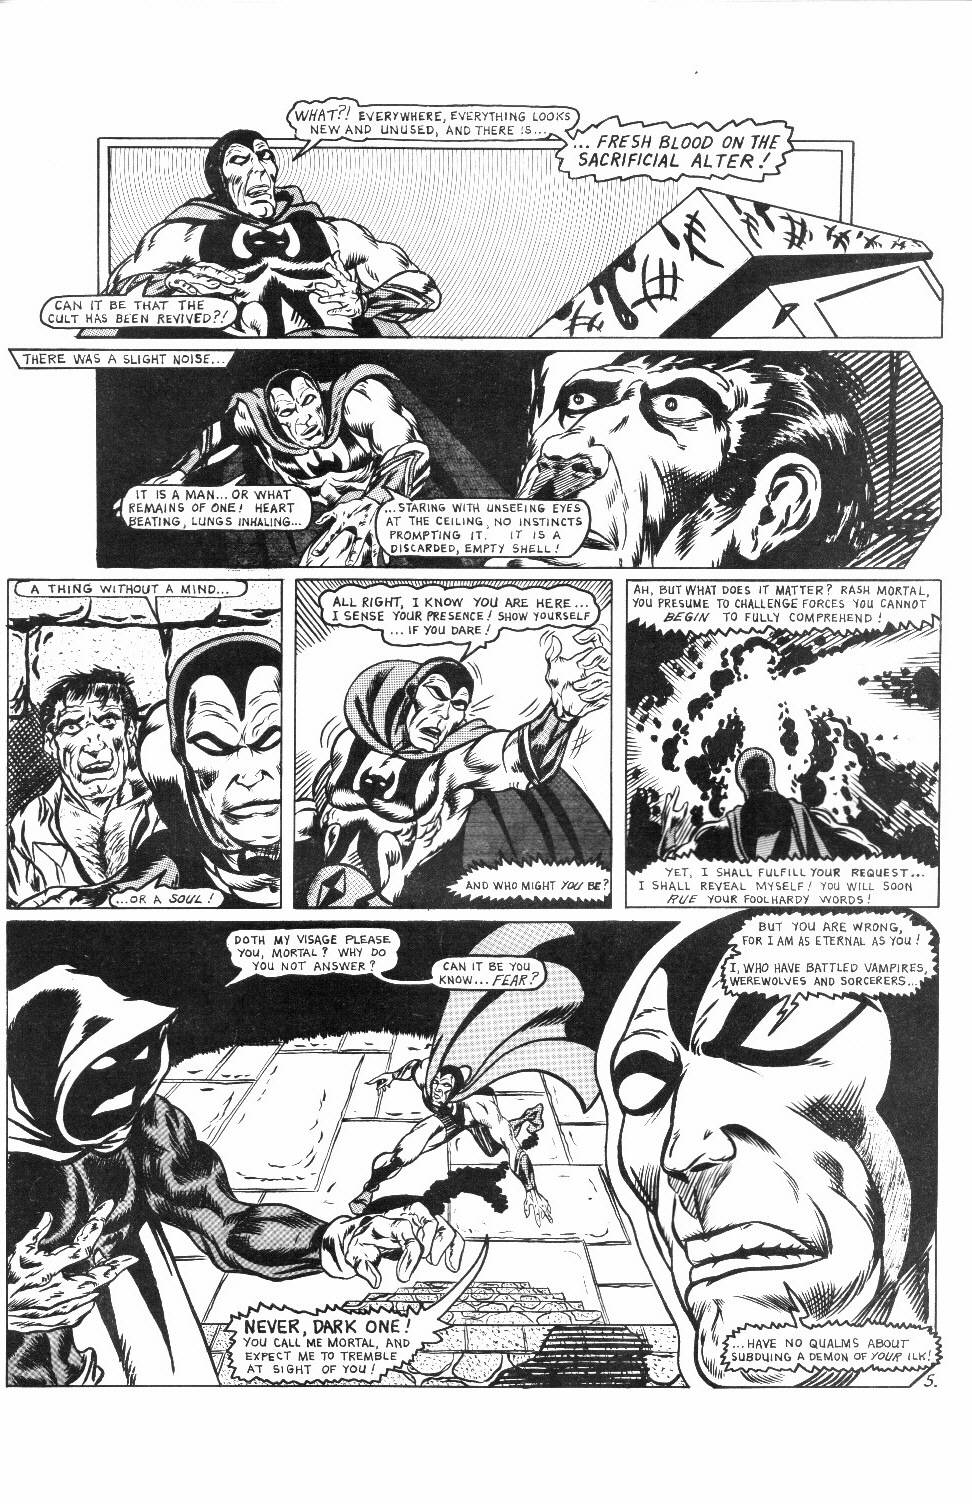 Read online Dr. Weird Special comic -  Issue # Full - 23